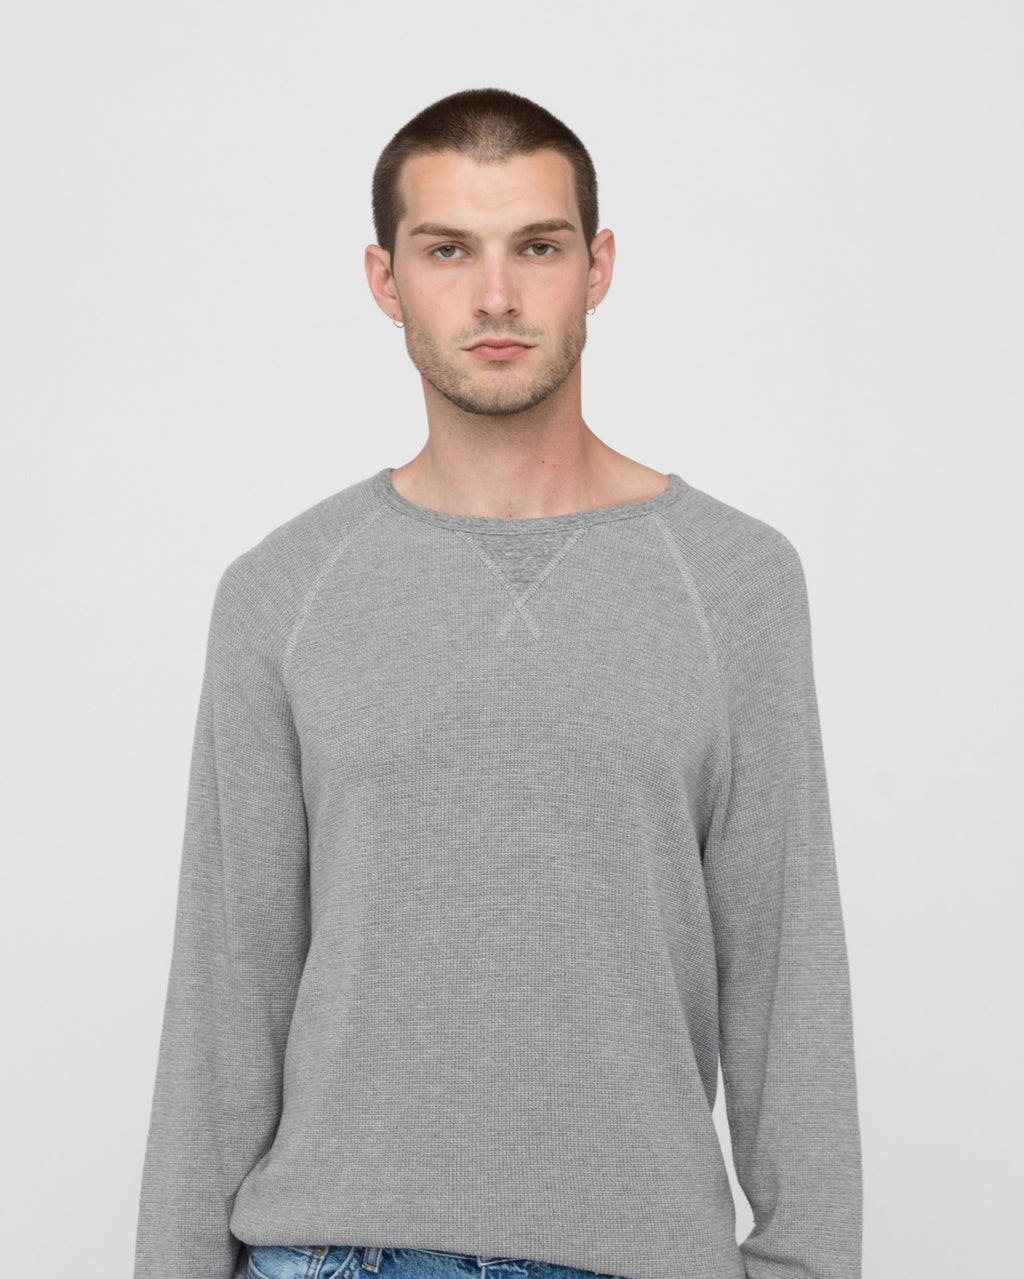 The Luis Shirt in Heather Grey